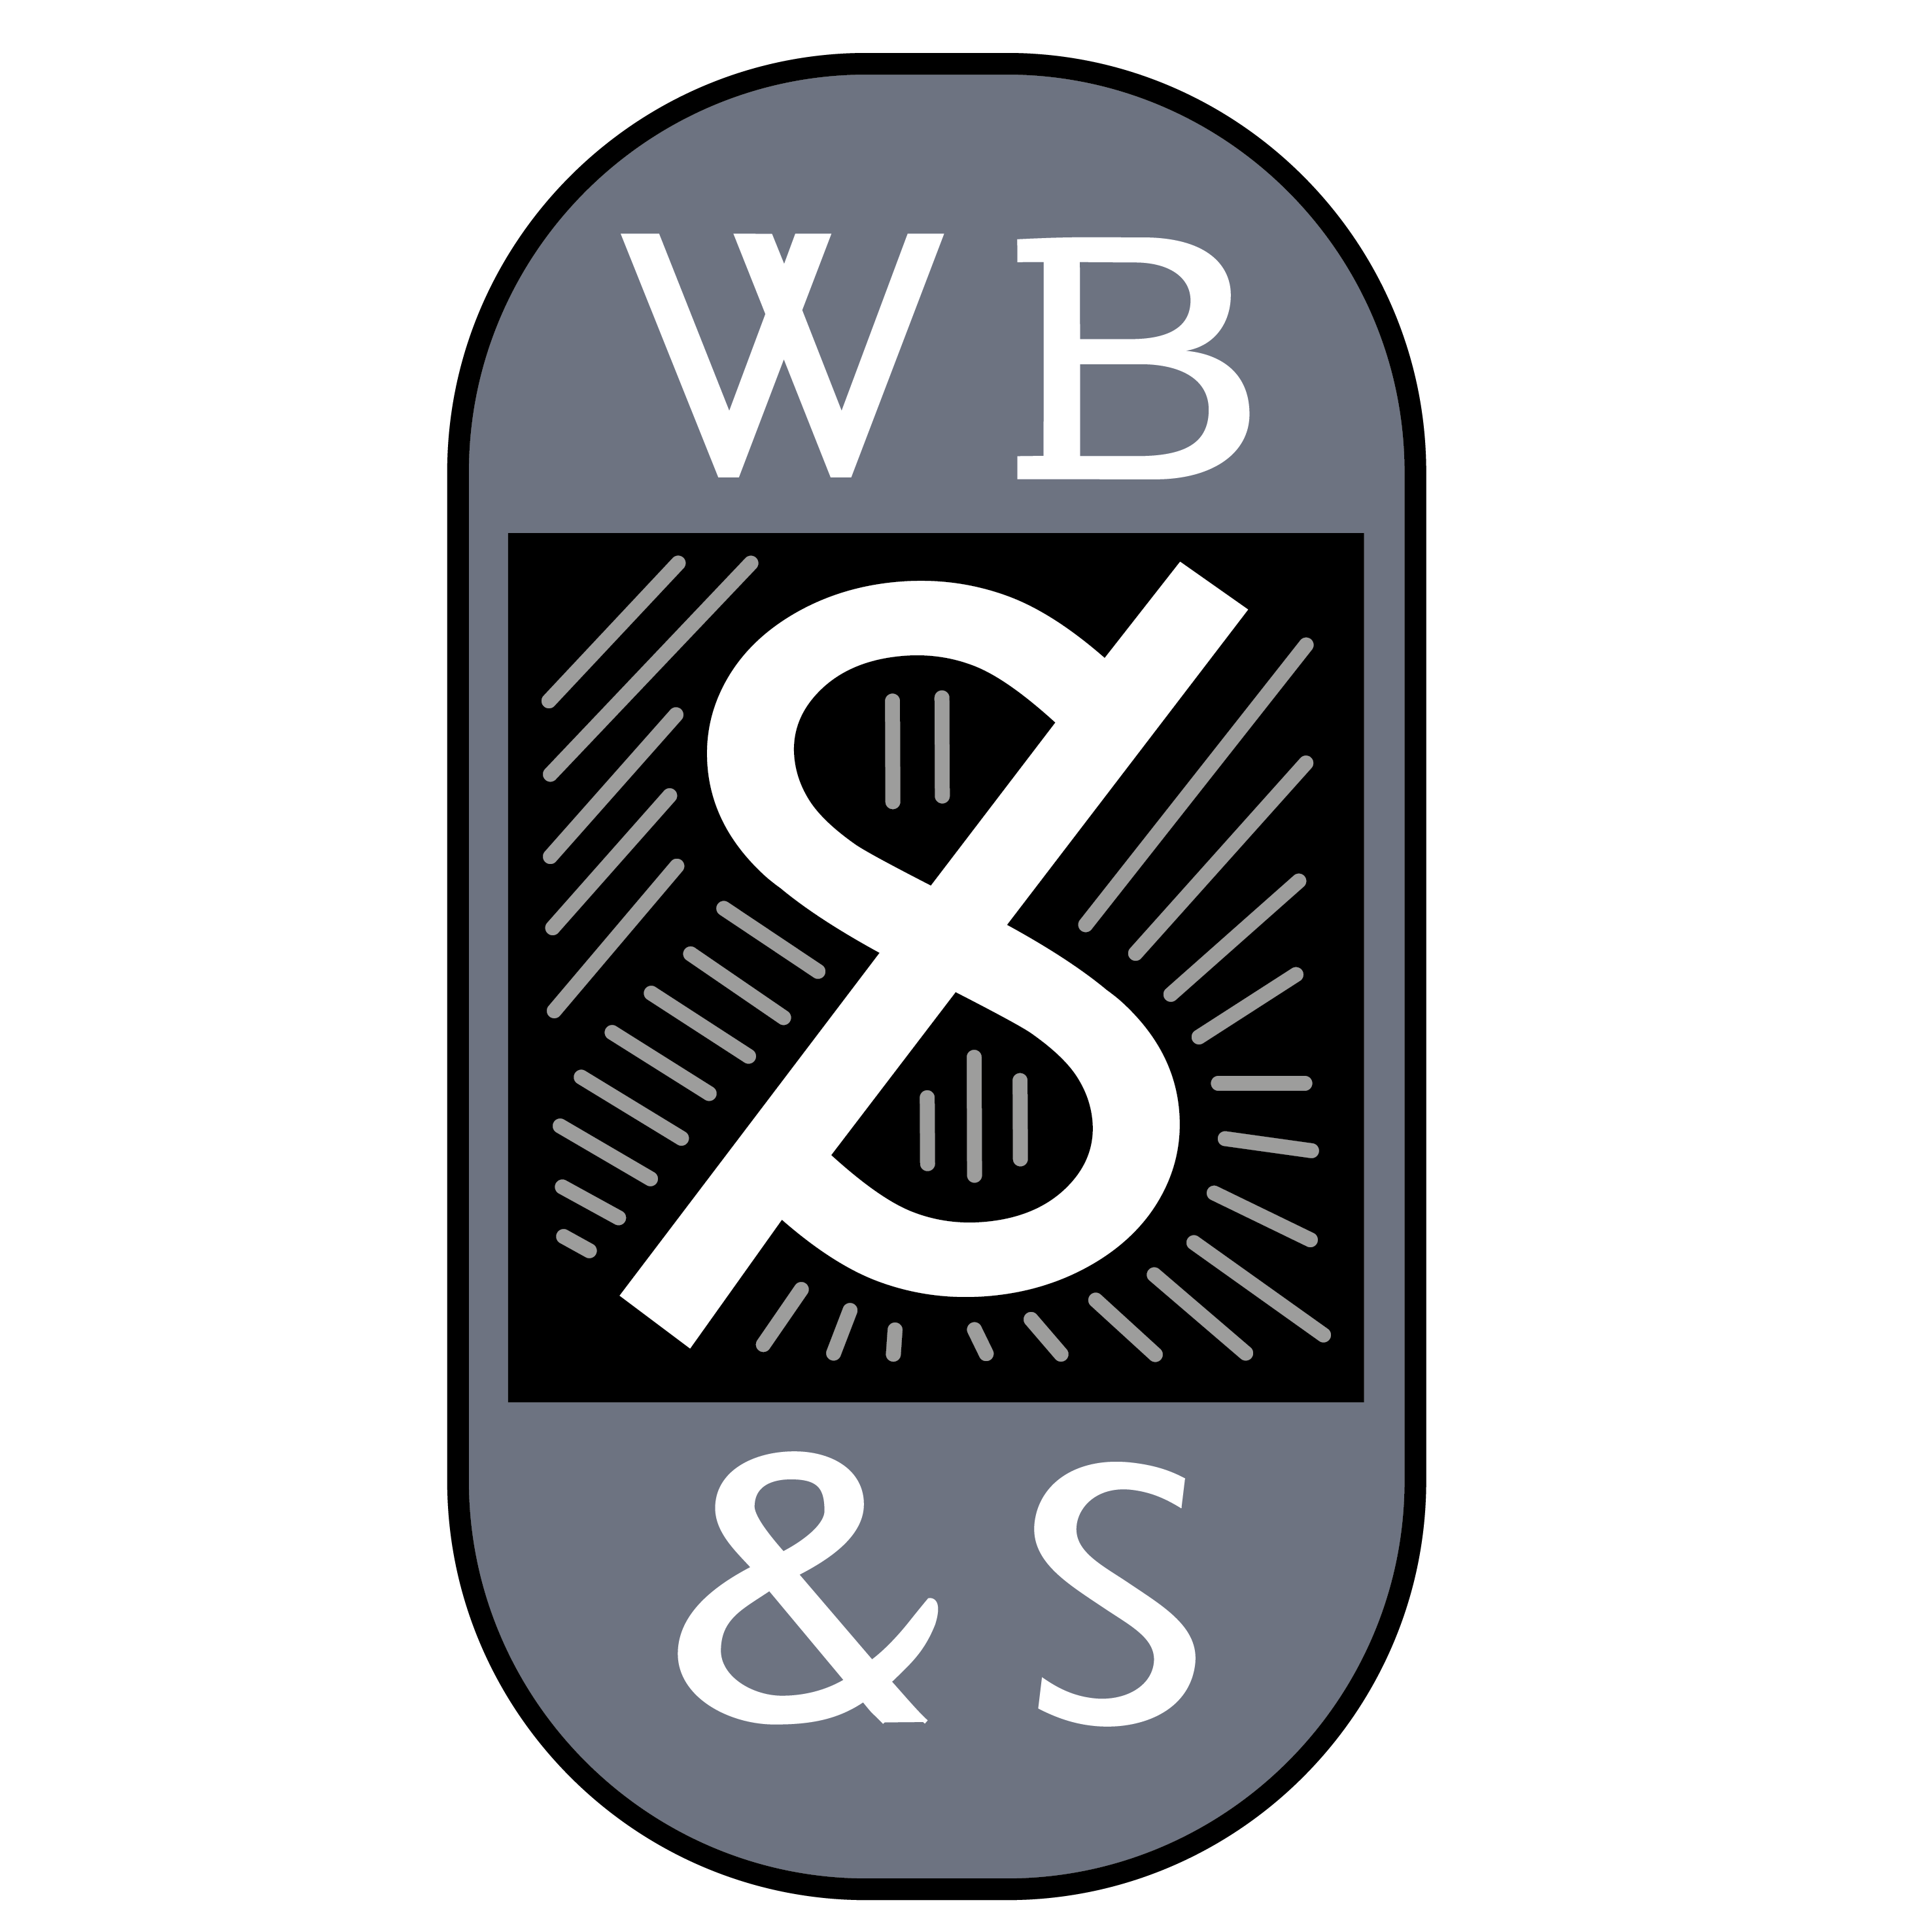 W B Simpson & Sons Ltd